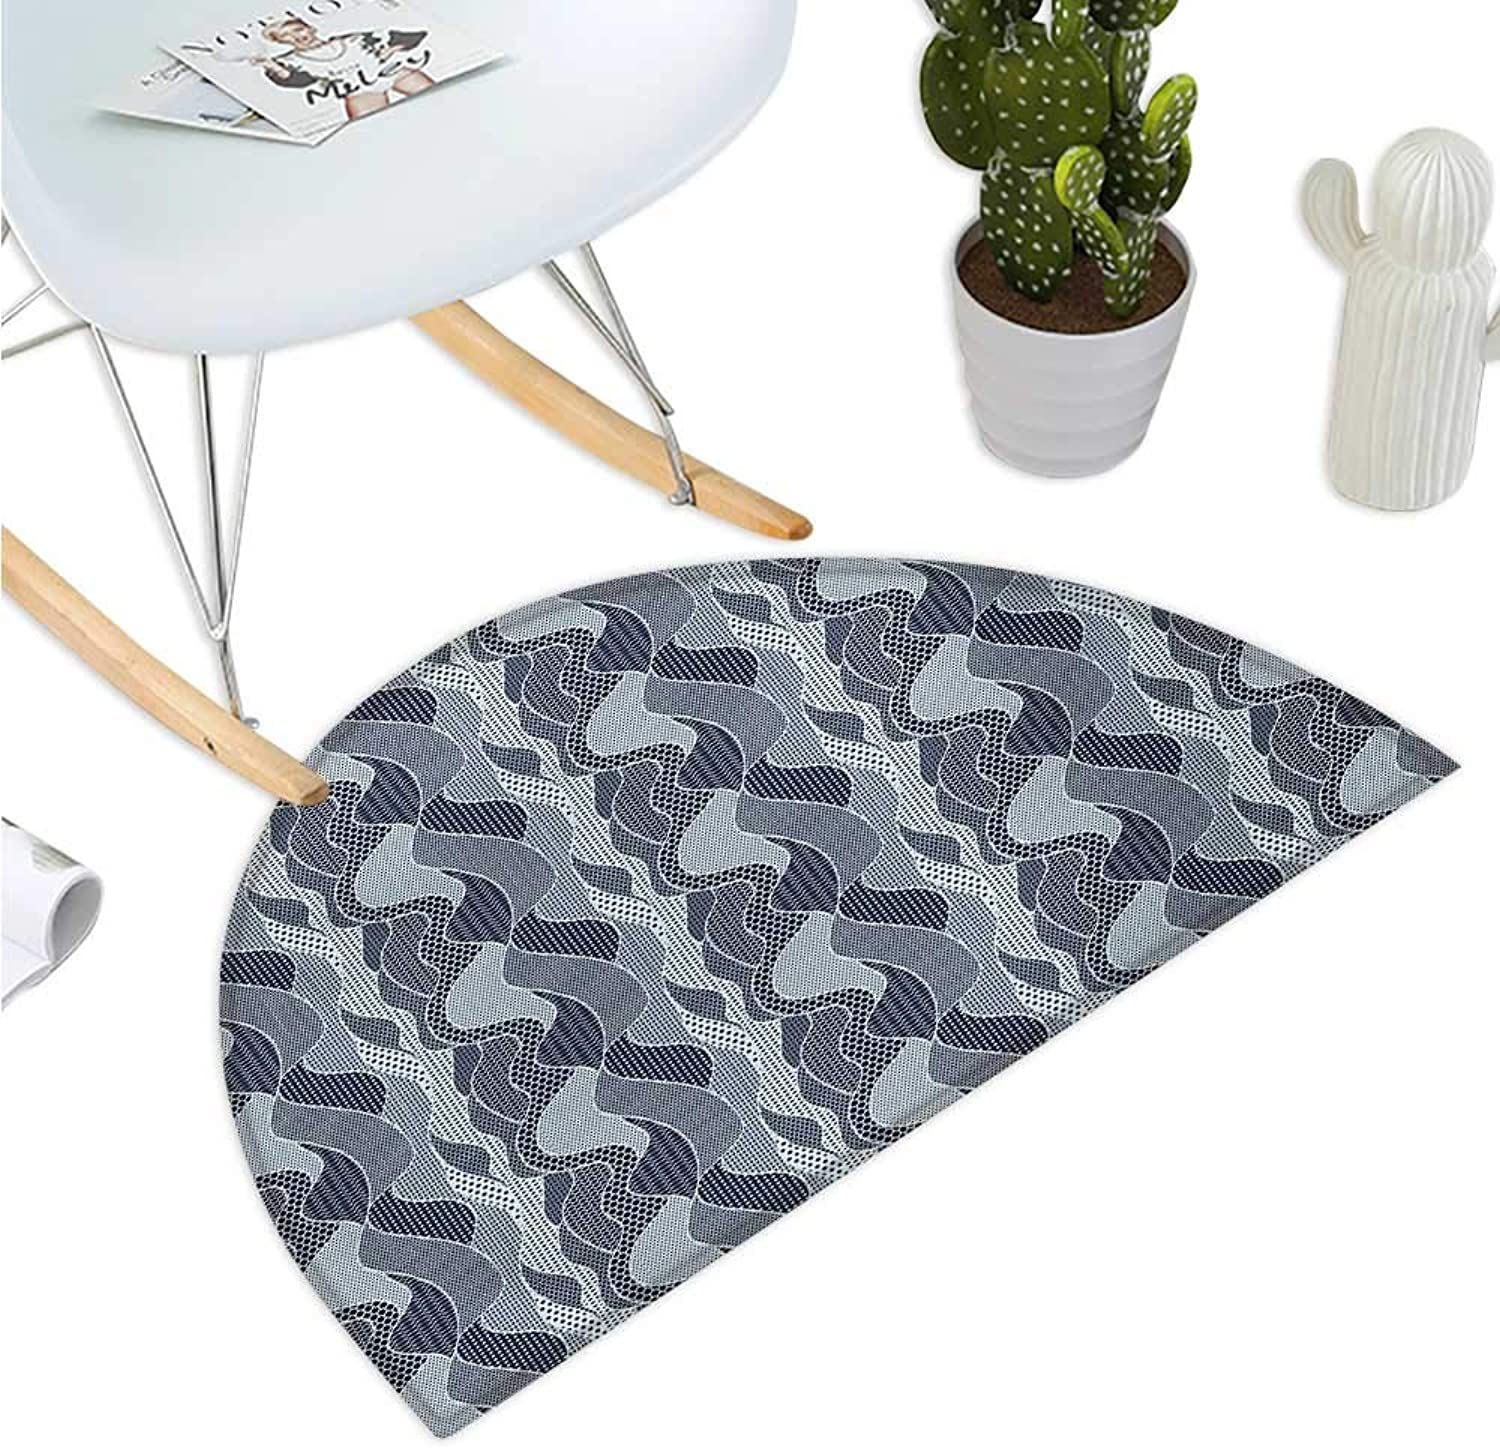 Abstract Semicircular Cushion Wavy Pattern with Circles Curves Dots and Hexagons Swirl Arrangement Halfmoon doormats H 35.4  xD 53.1  Dark bluee and Baby bluee